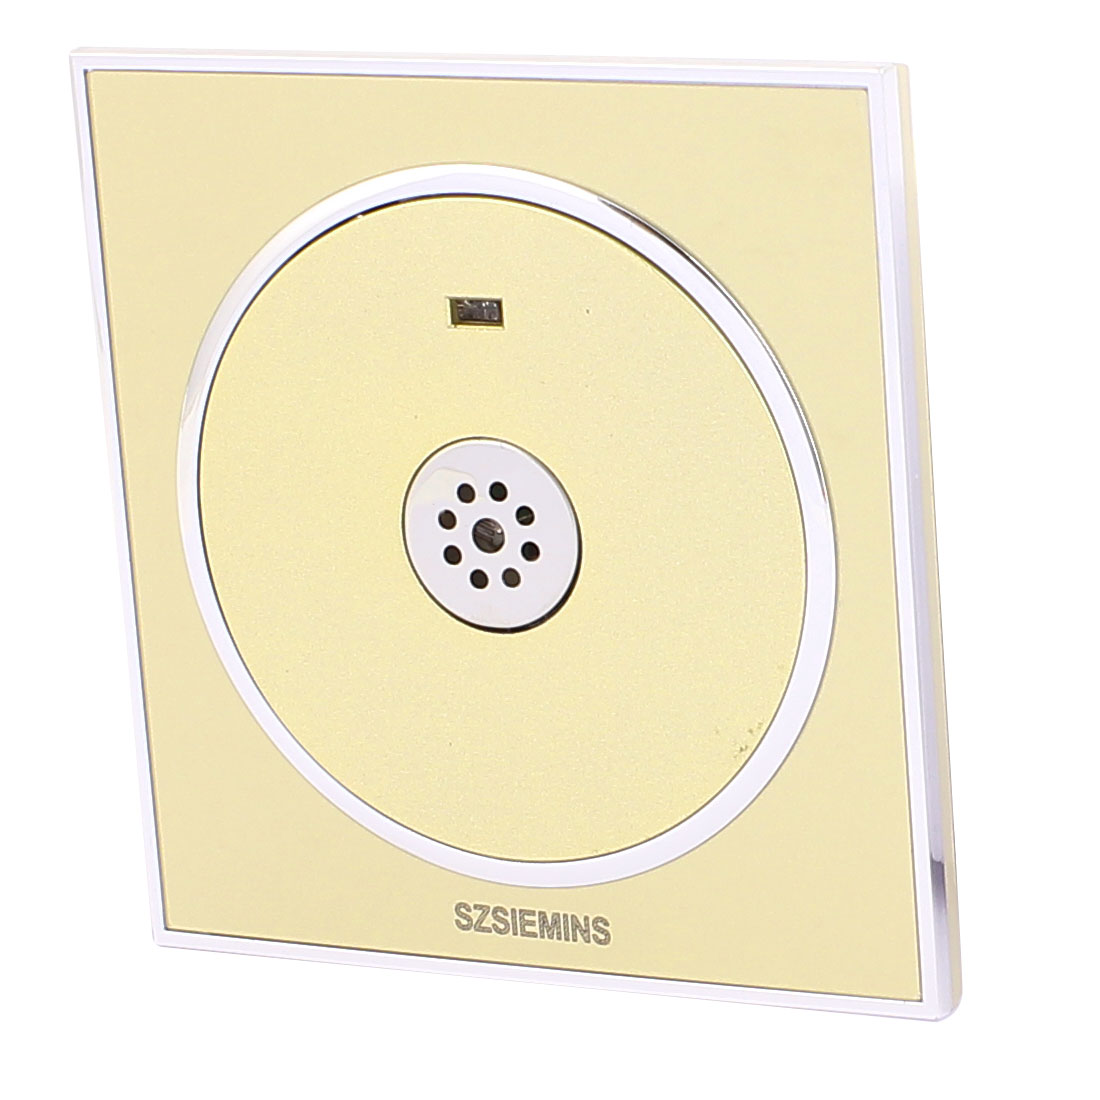 AC 160V-250V 3-100W Noctilucent Mirrored PMMA Surface Gold Tone Wall Mounted Sound Control Sensor Time Delay Switch